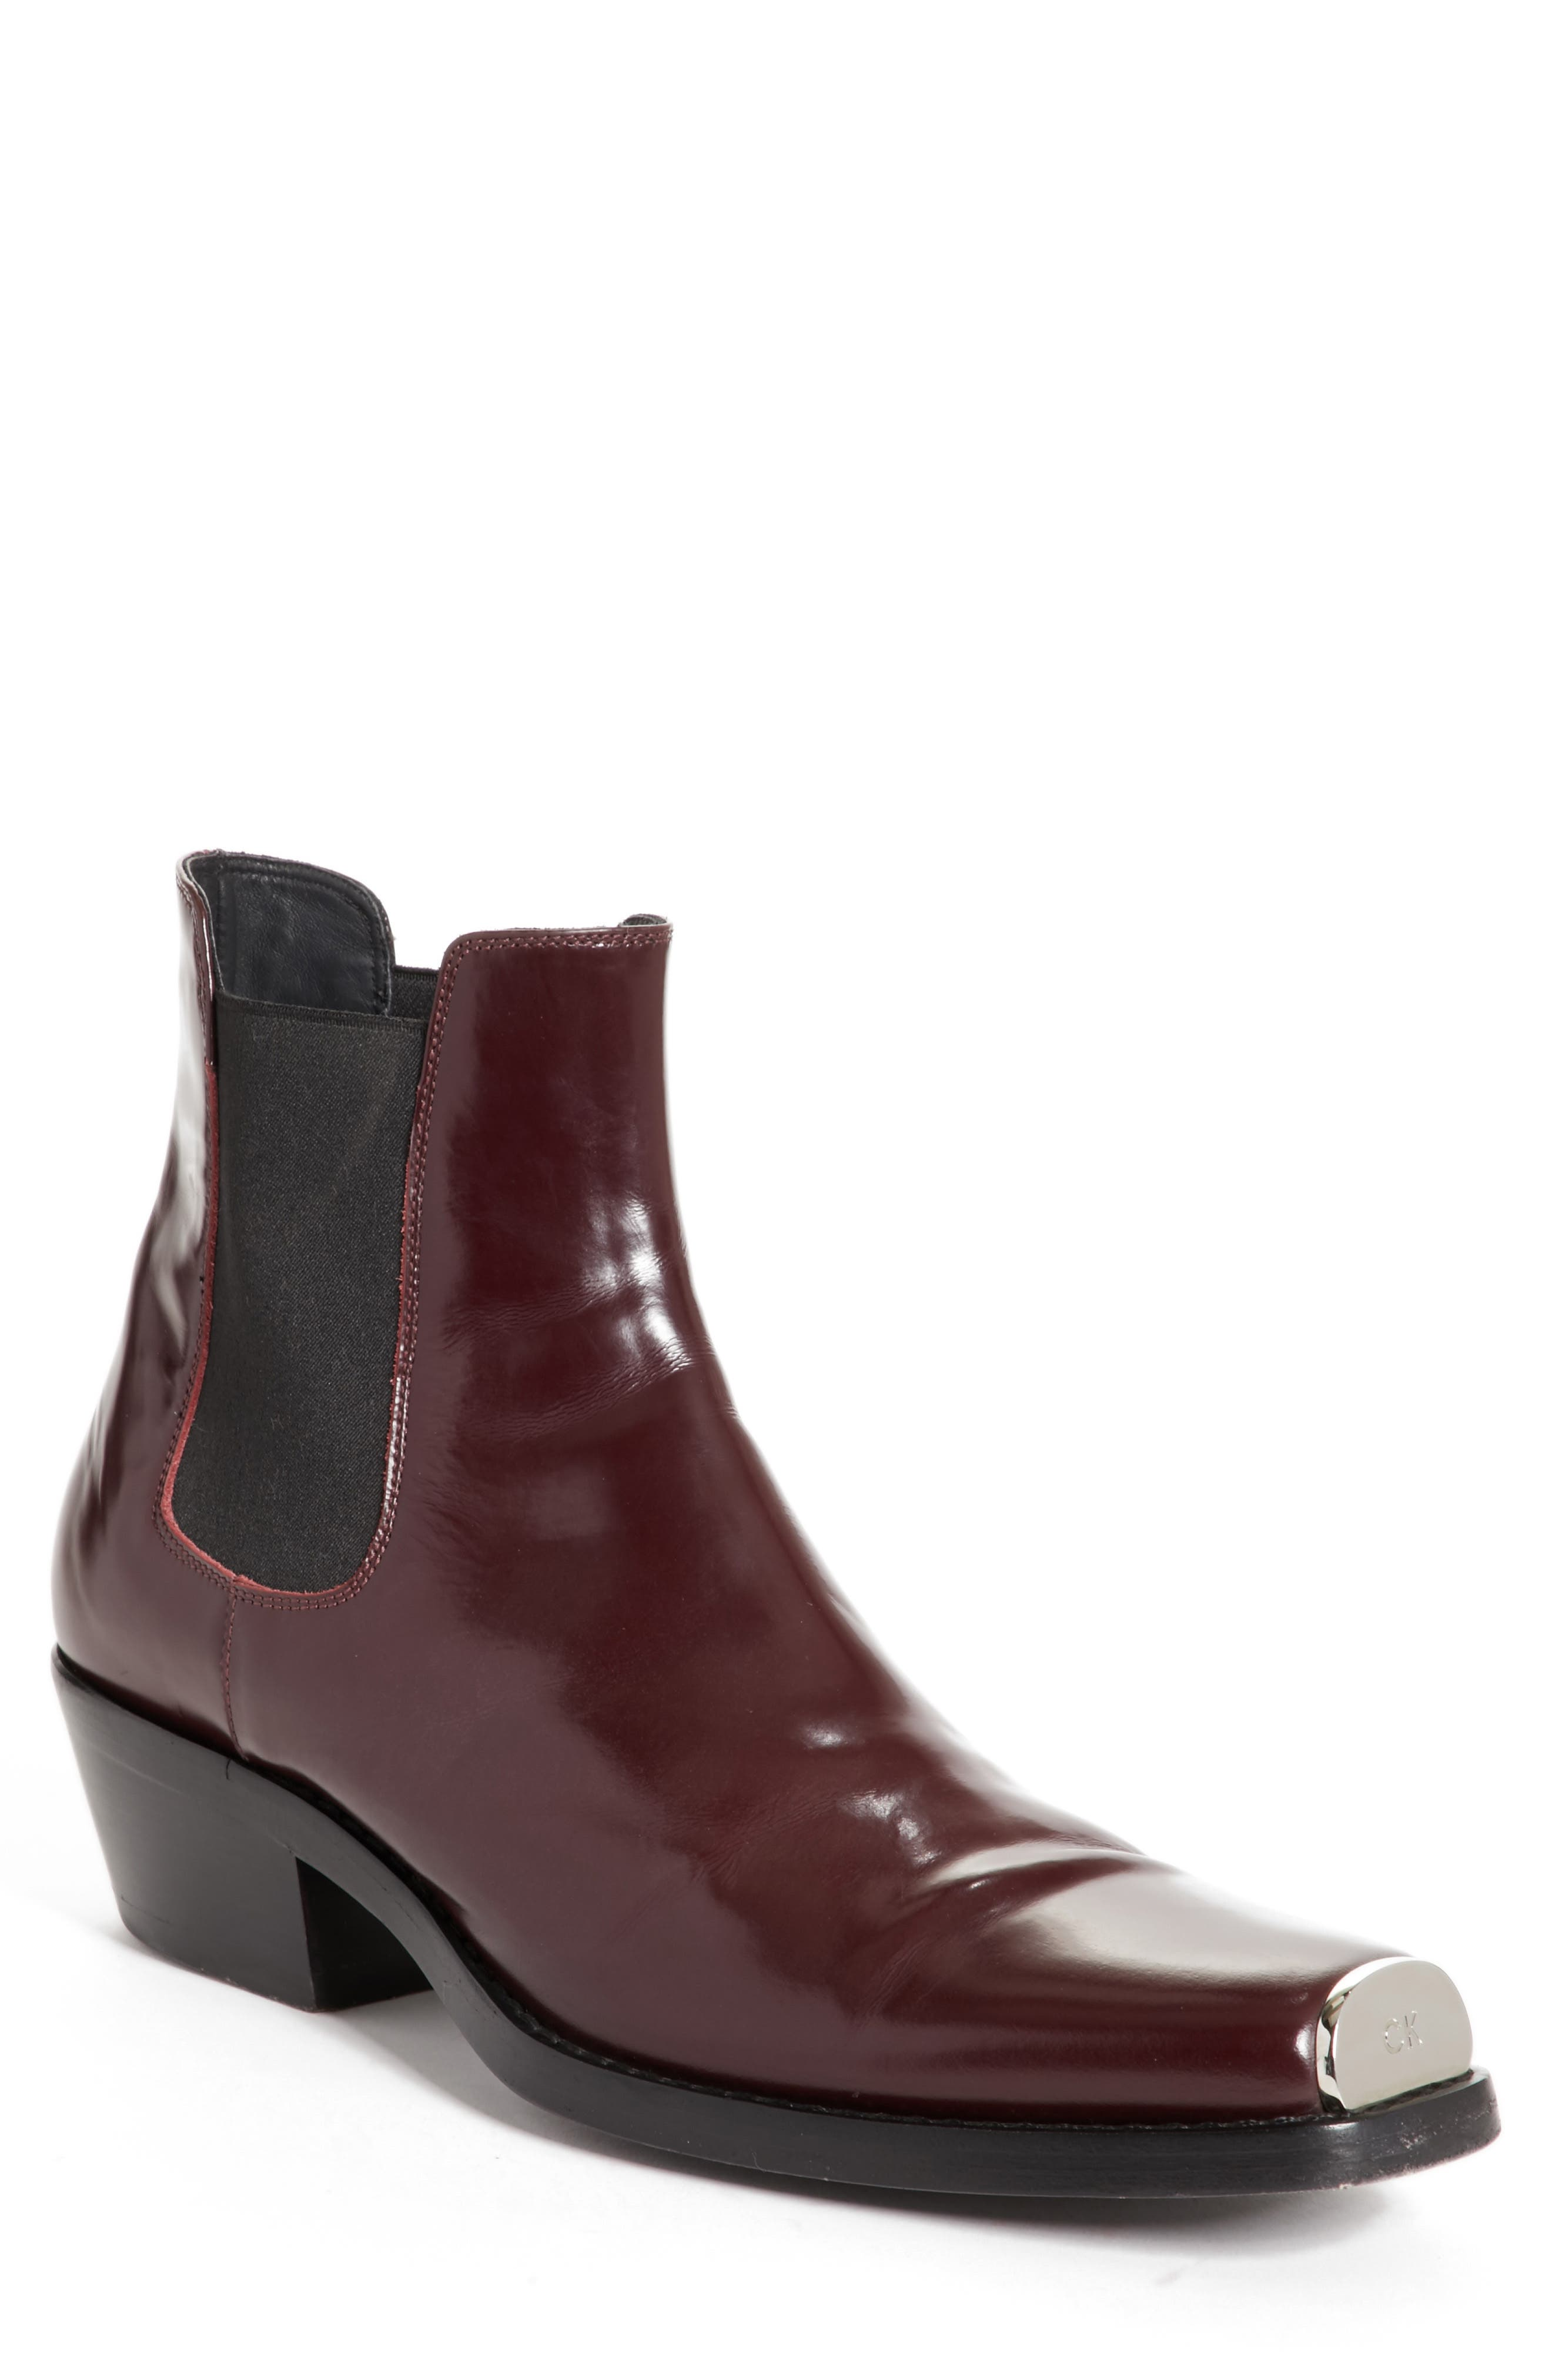 Chris Western Metal Tip Boot,                             Main thumbnail 1, color,                             Bordeaux Leather